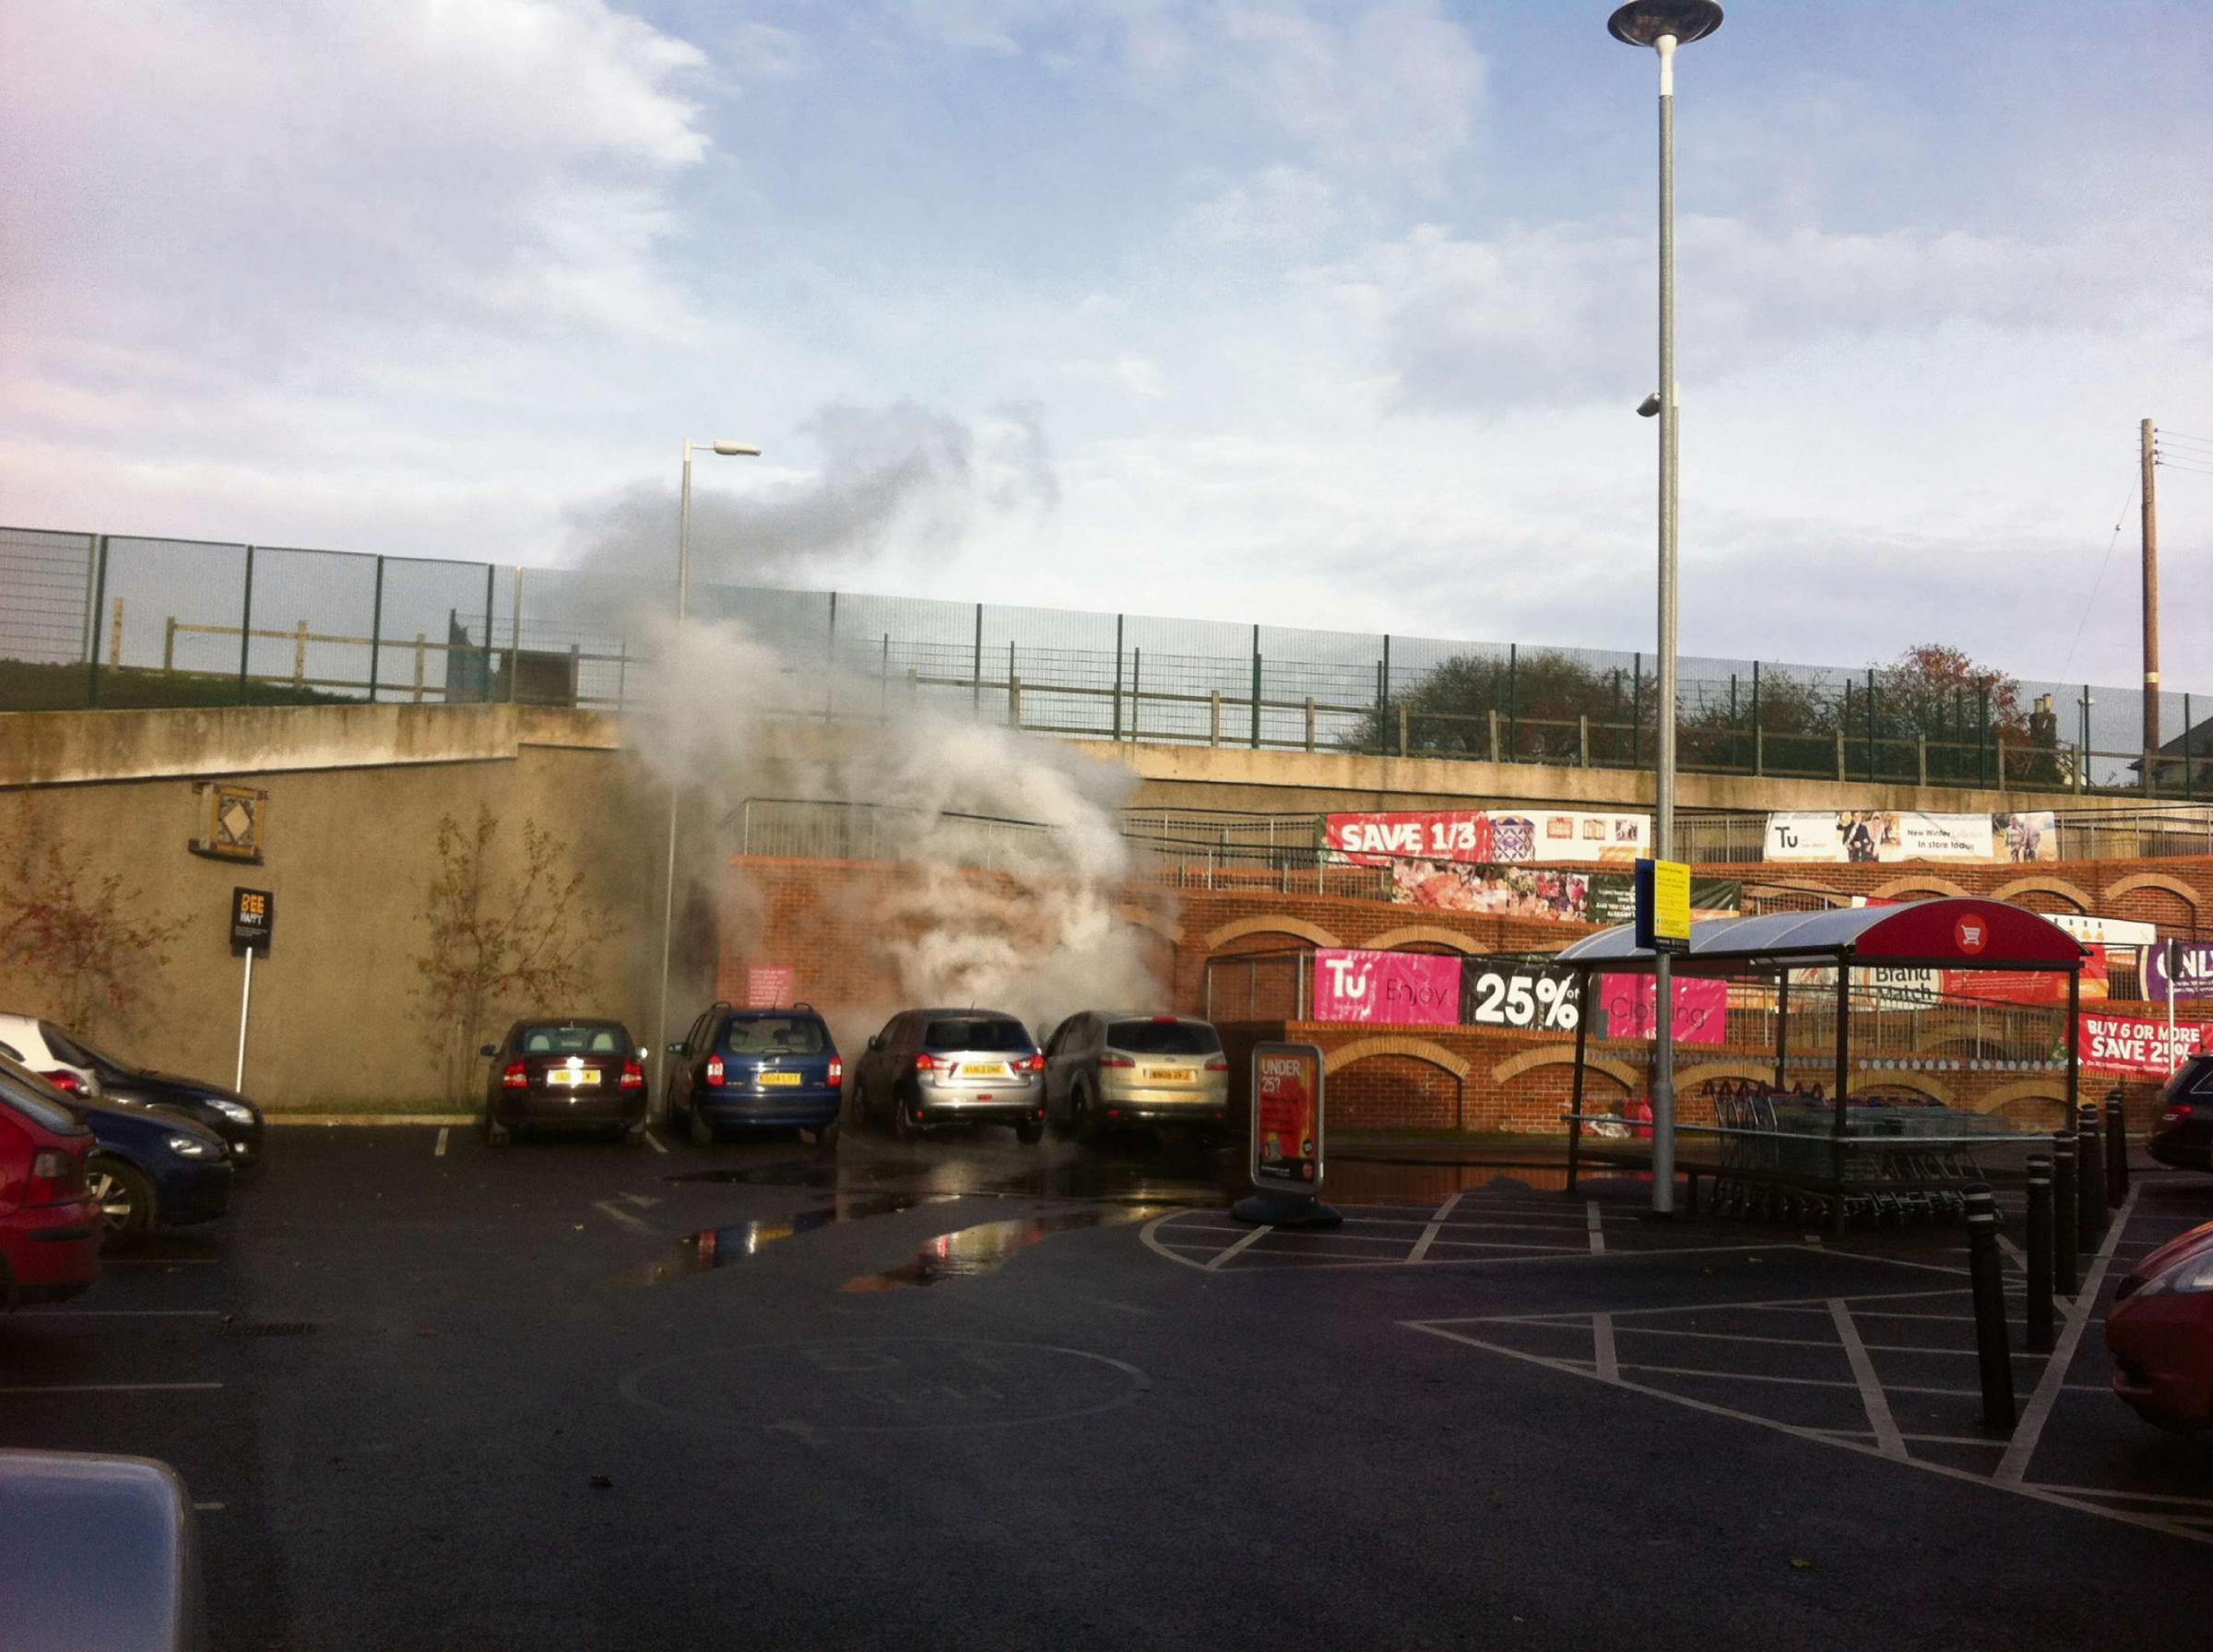 Woman escapes from burning car in Dursley supermarket car park